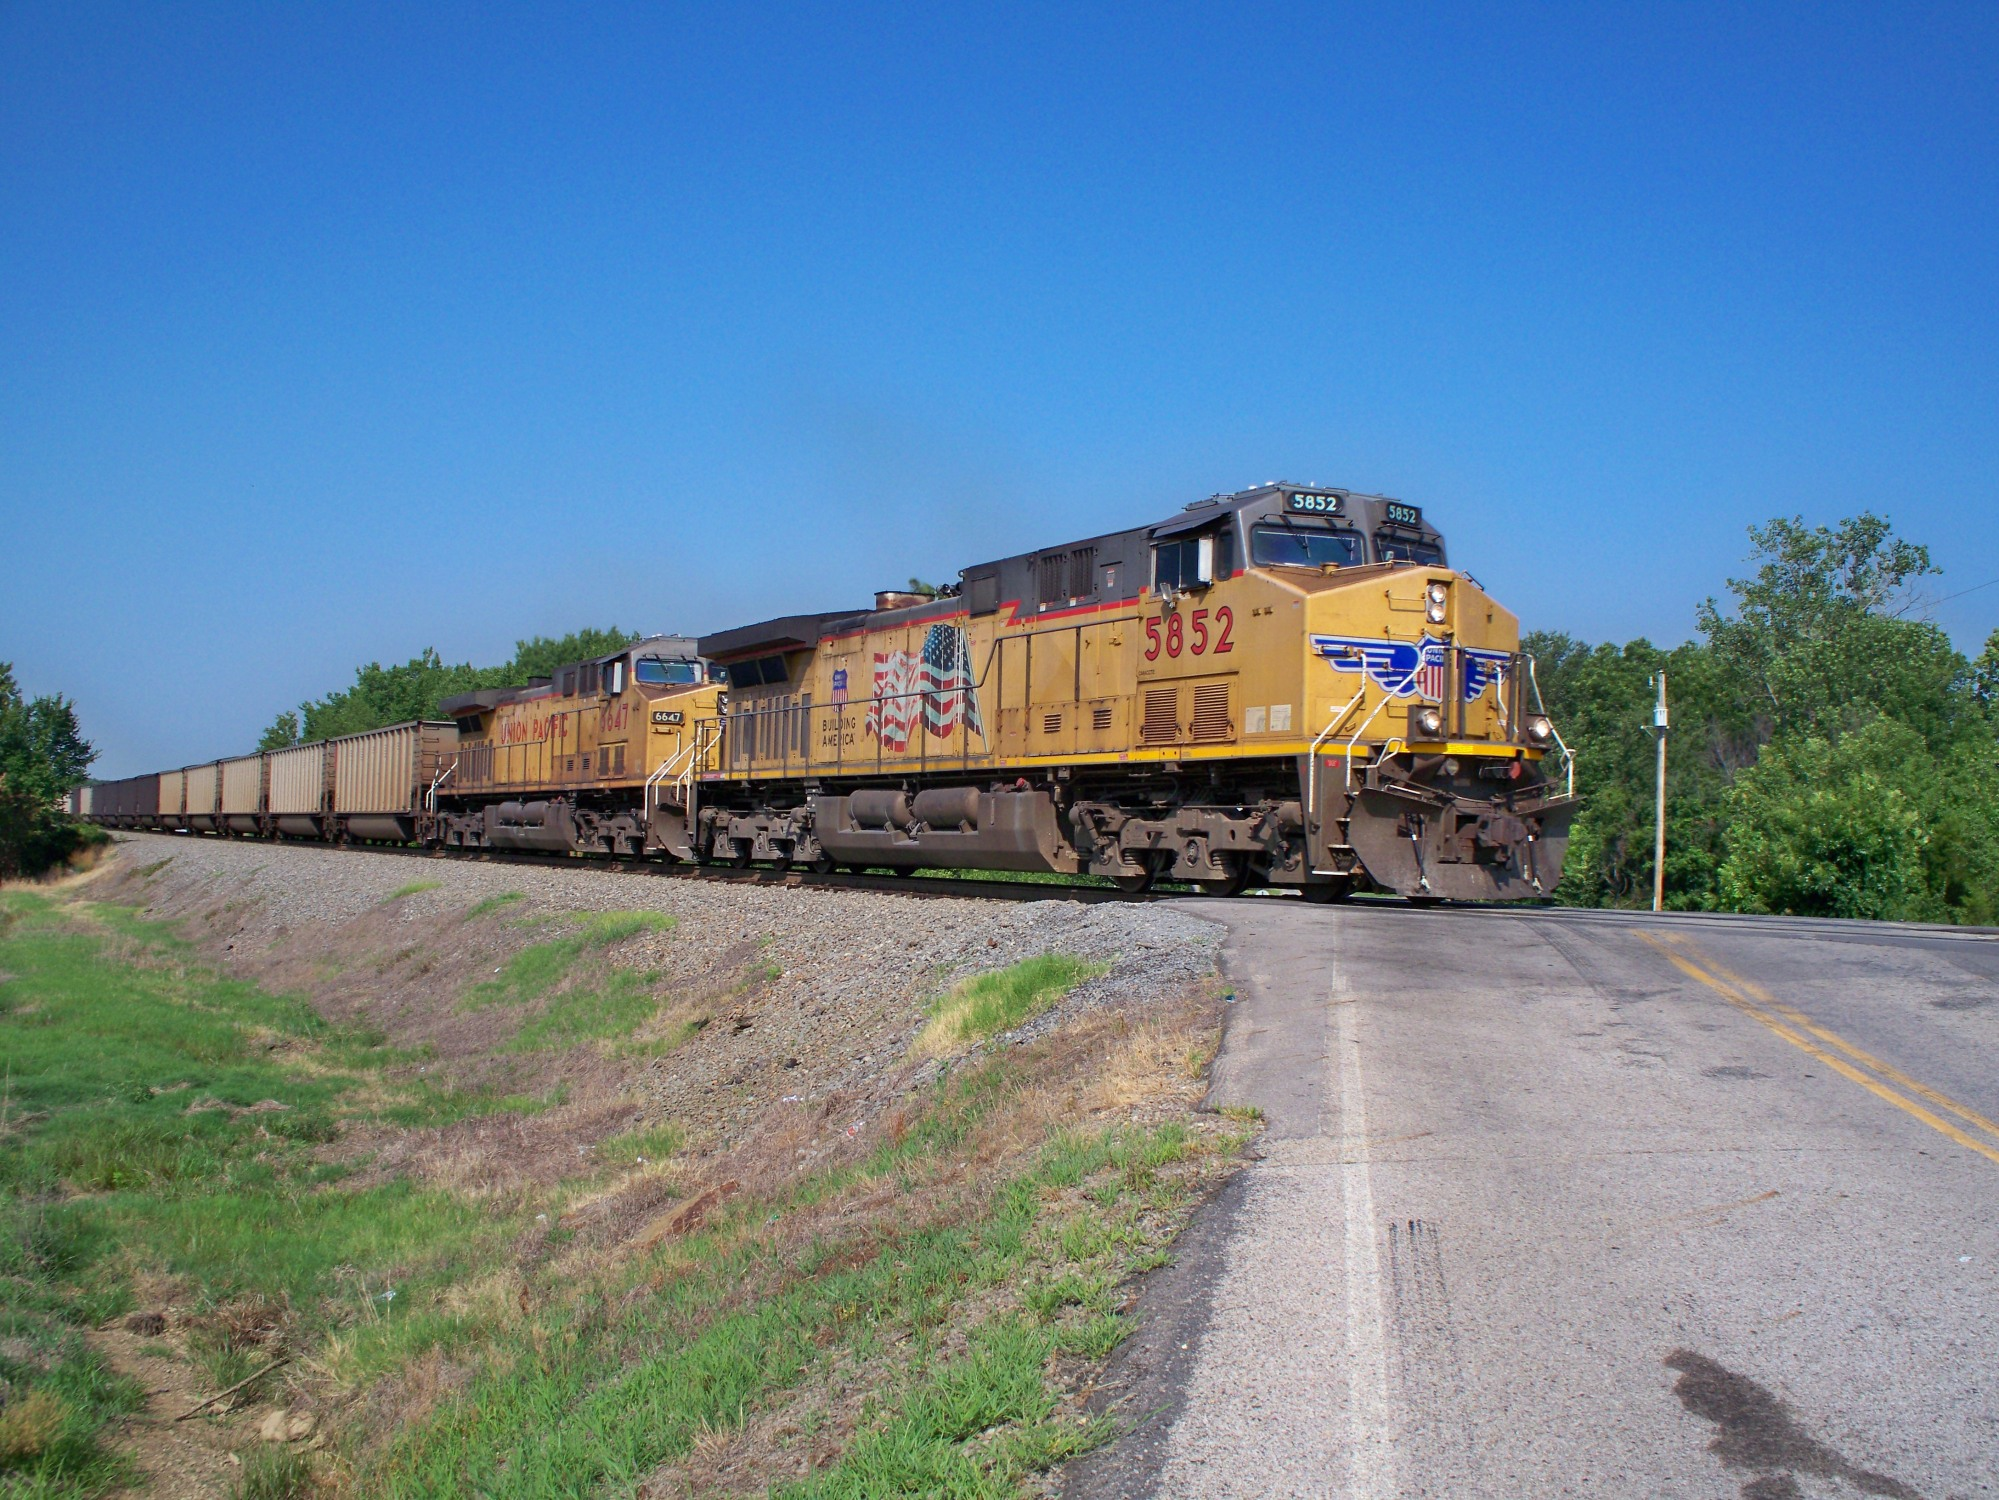 Union Pacific 5852 crossing Hilltop road just East of Van Buren Saturday June 23 2012